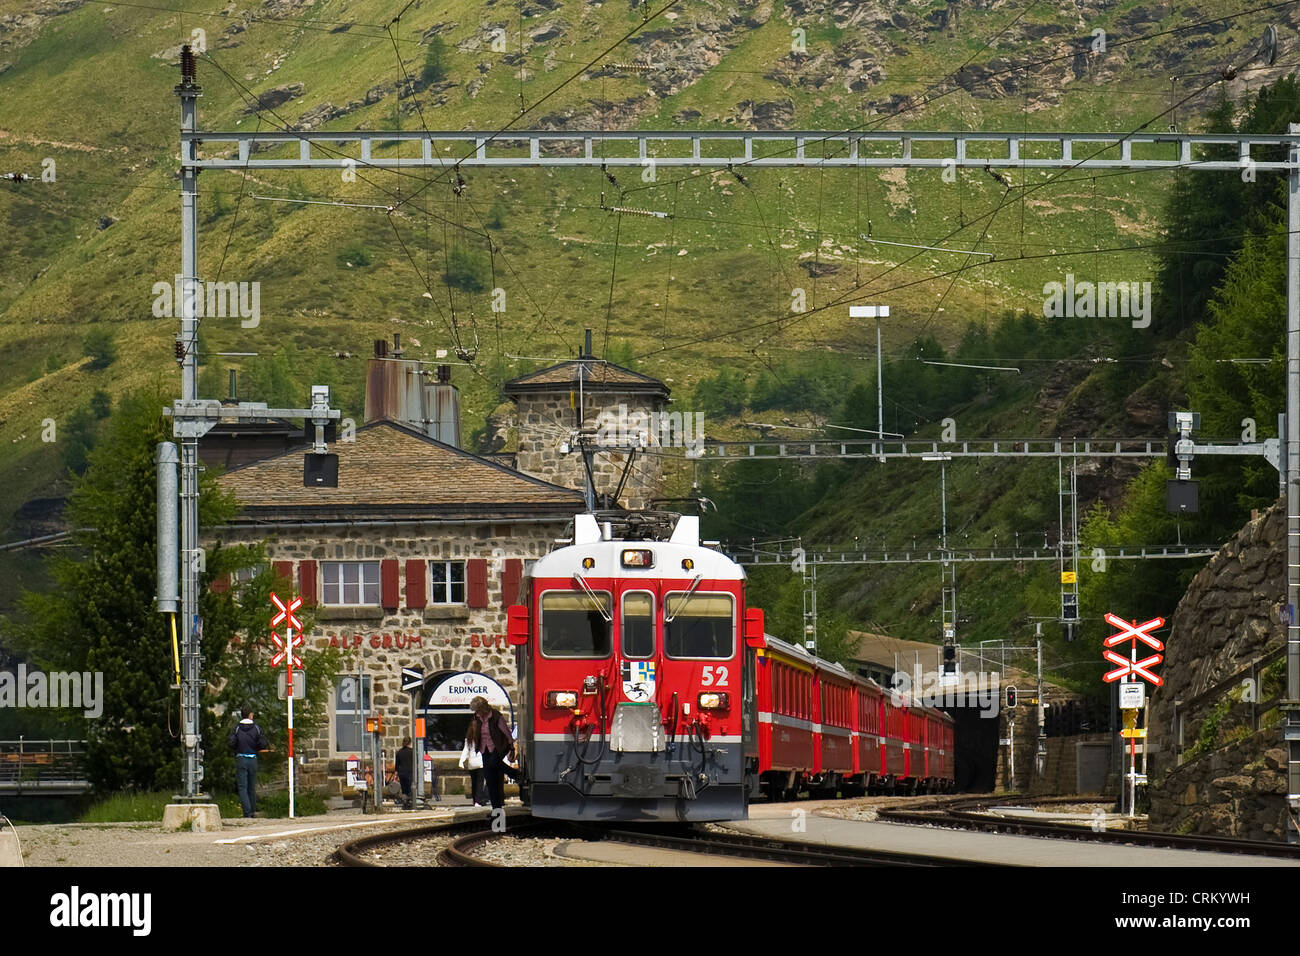 Switzerland, Canton Grisons, Bernina express, Alp Grum railway station - Stock Image